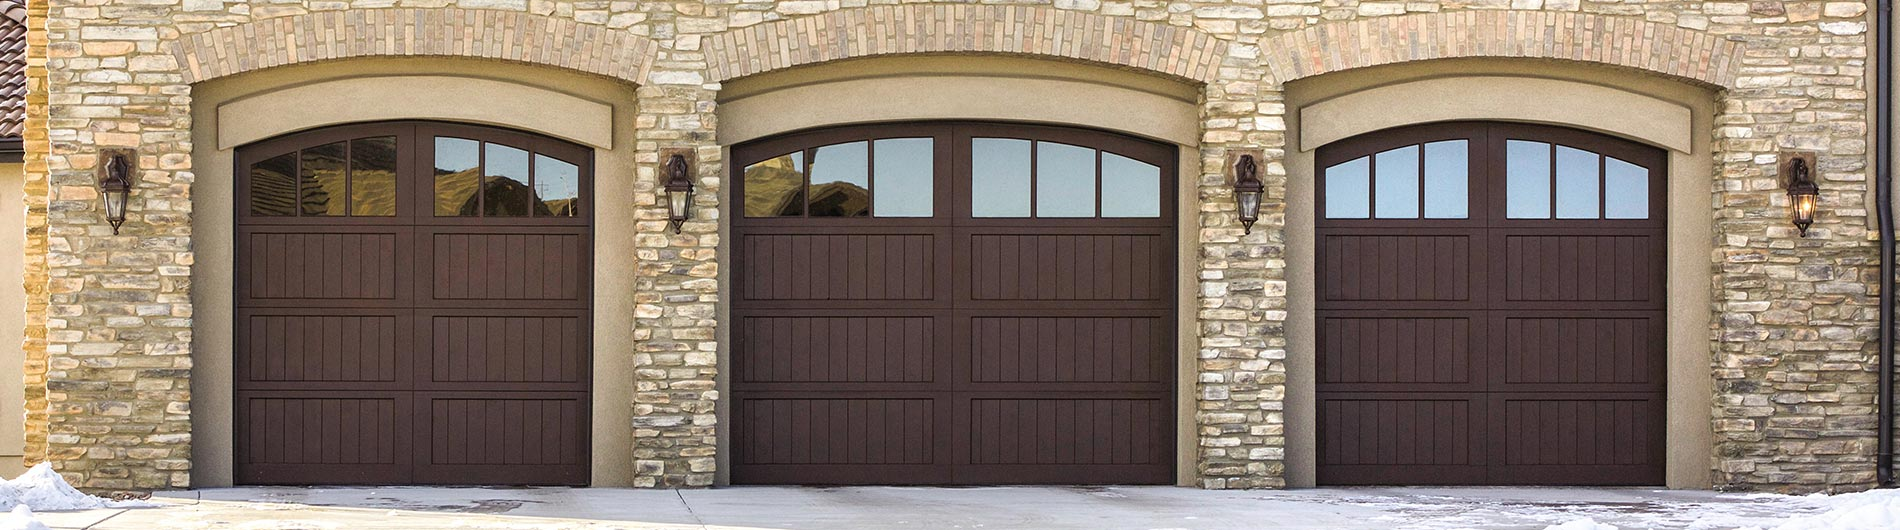 Wood Garage Door 7103